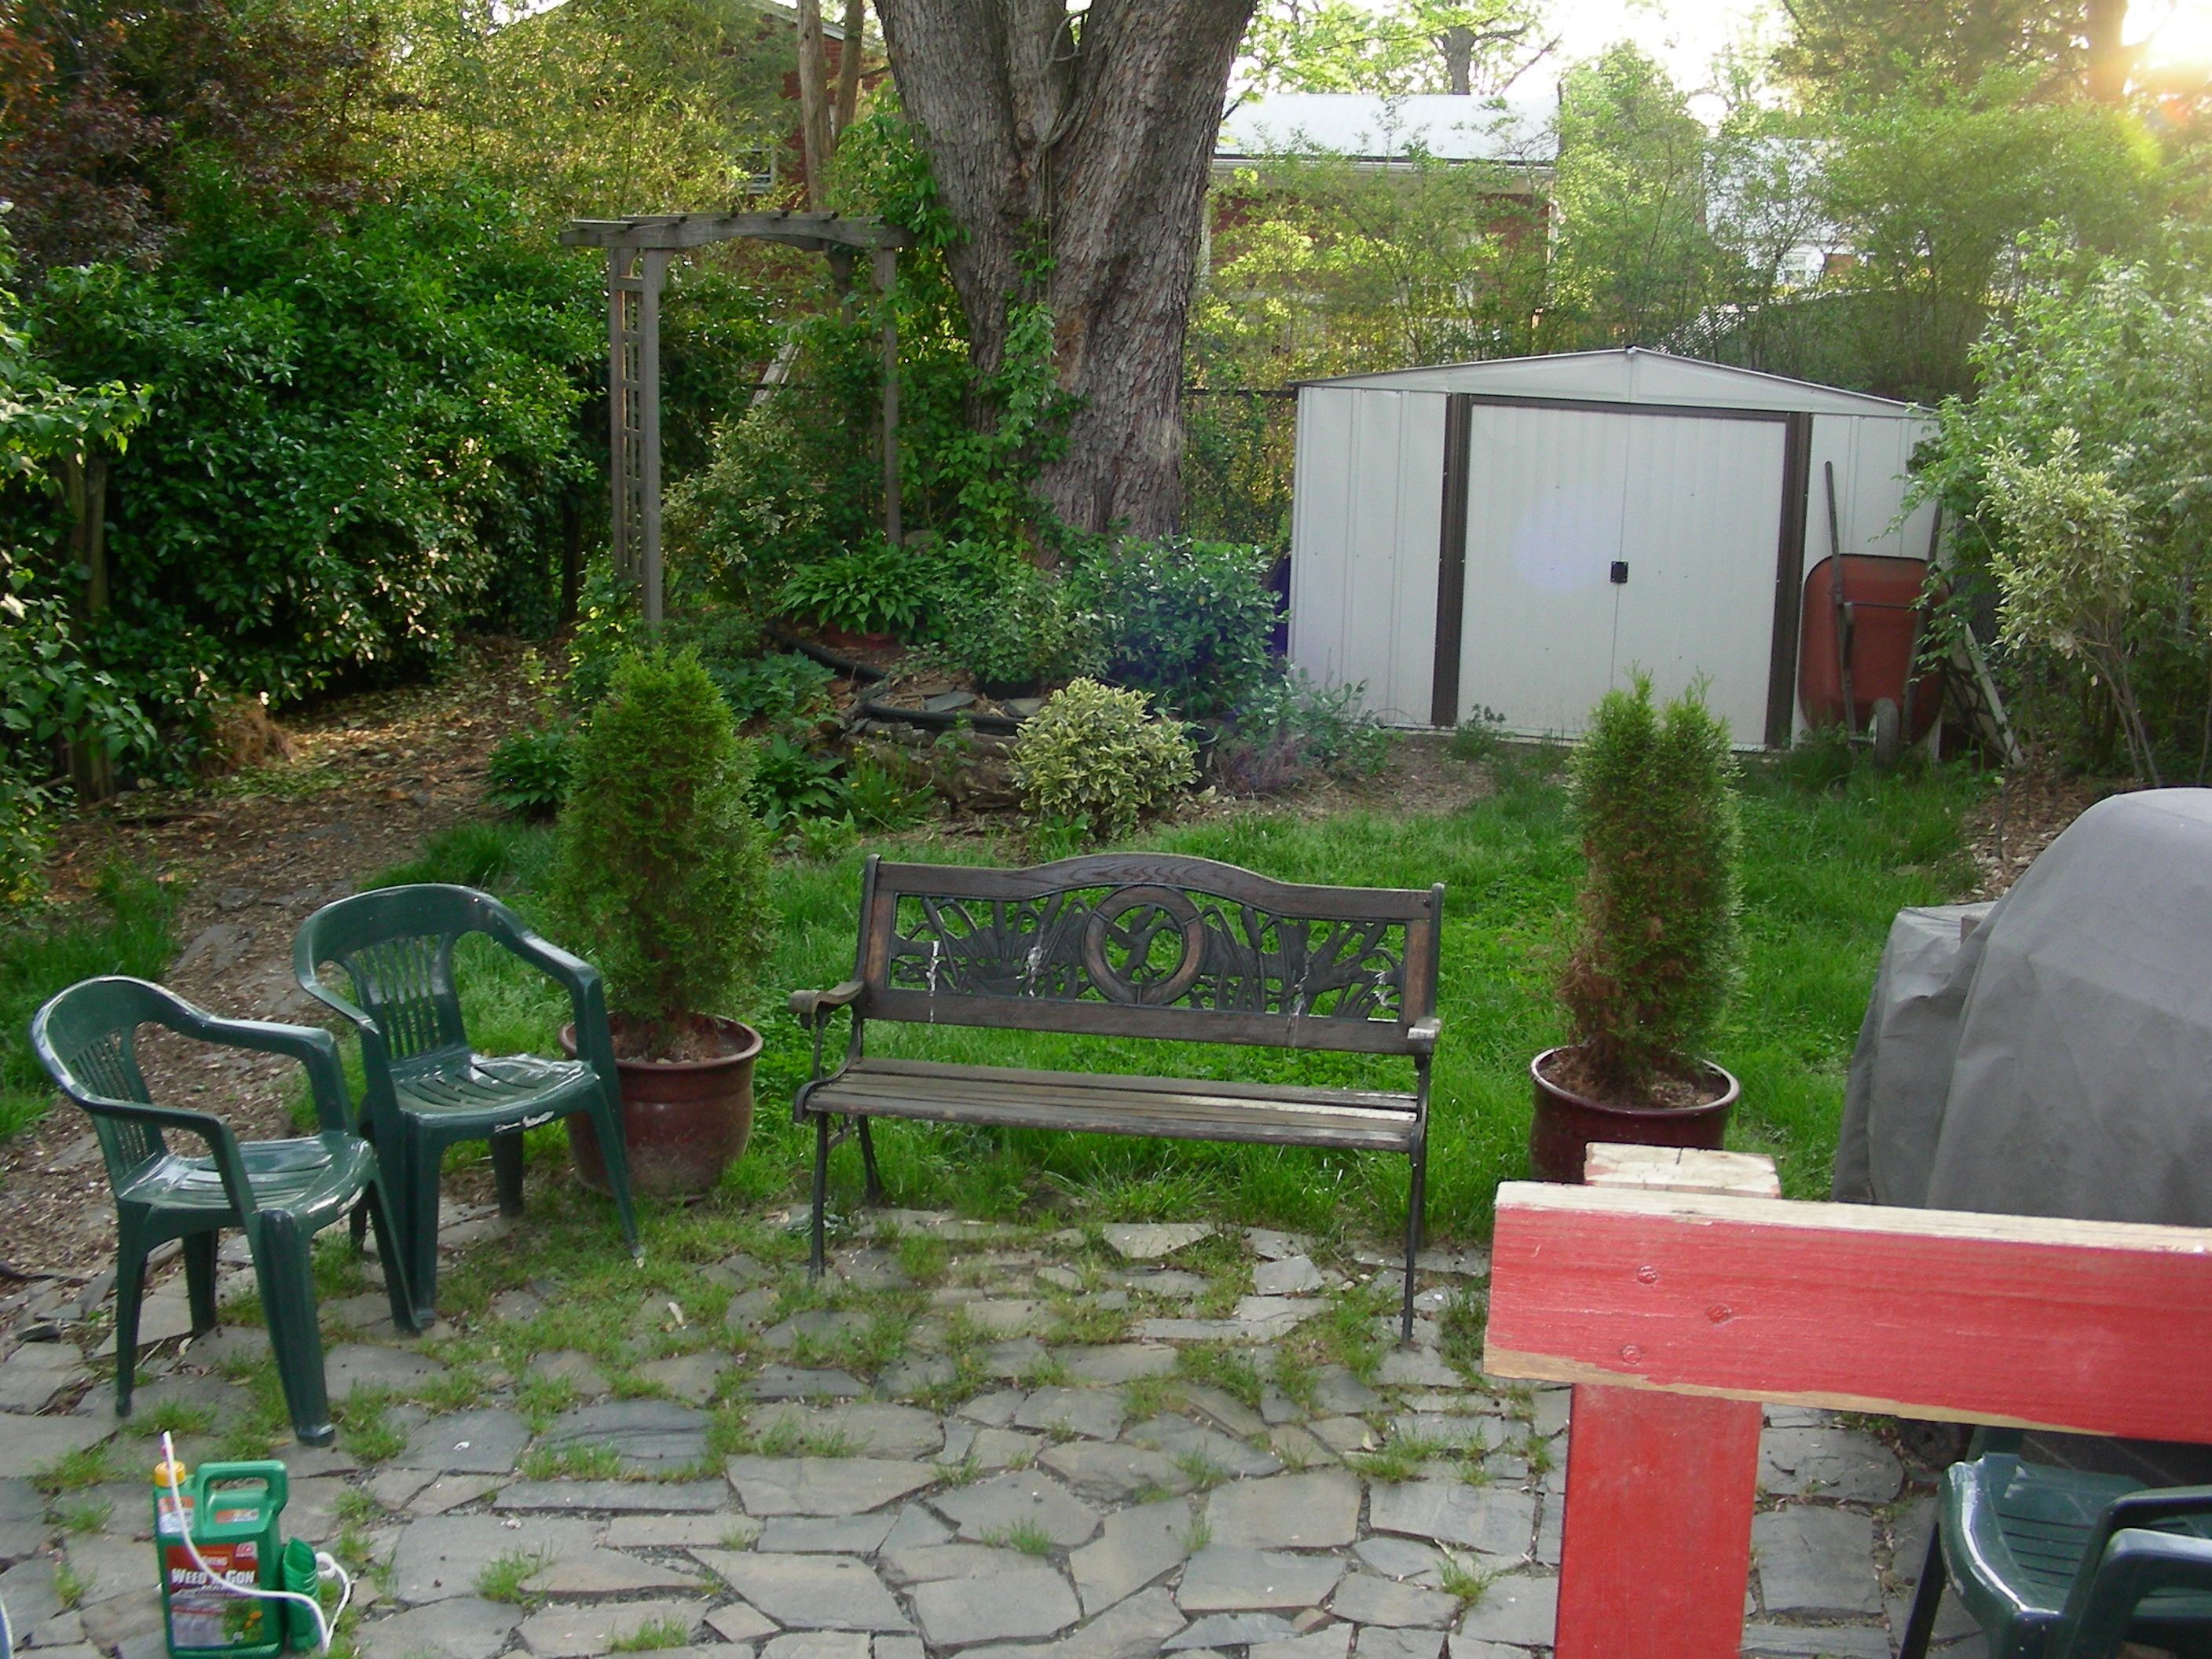 This old backyard was created by building a pond and an area with rocks such as this to relax and enjoy the backyard